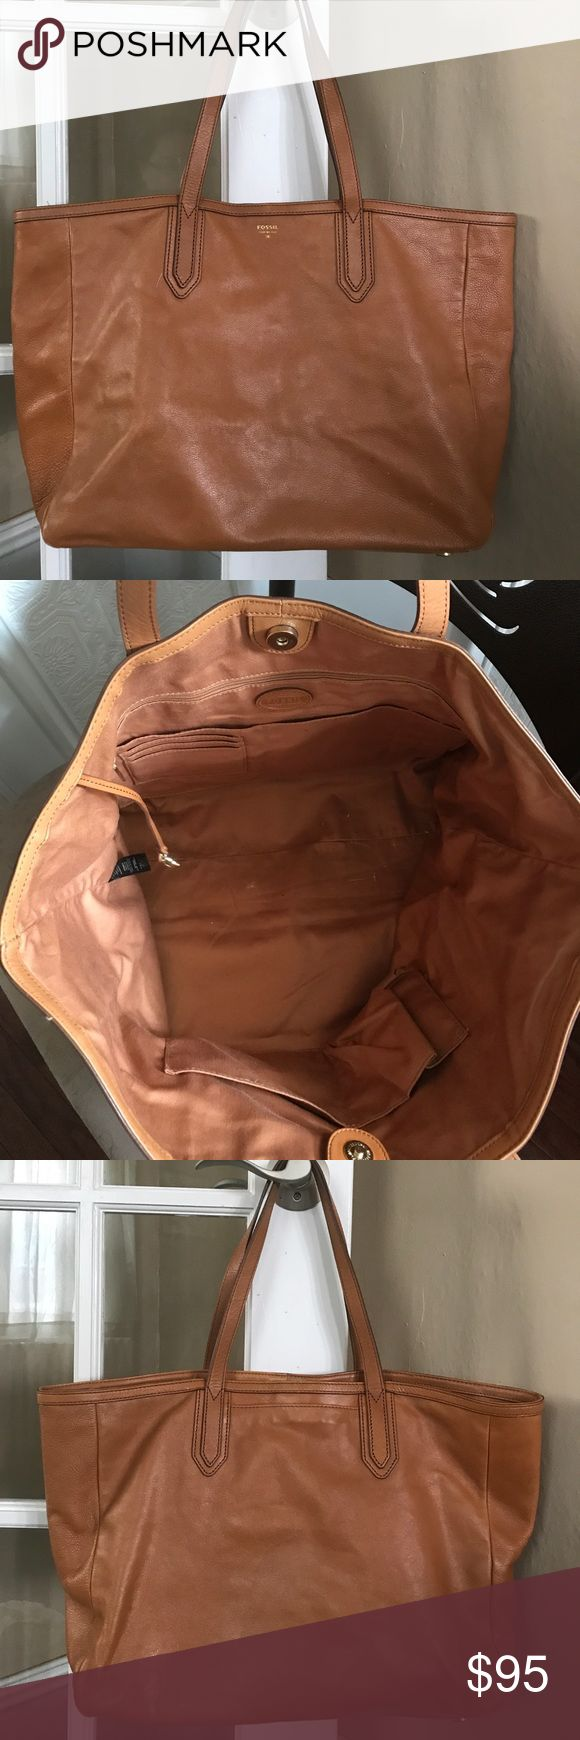 Fossil Tote Tons of storage! Slight discoloration on bottom corner of bag. Comes with protective dust bag. Smoke free home! Fossil Bags Totes